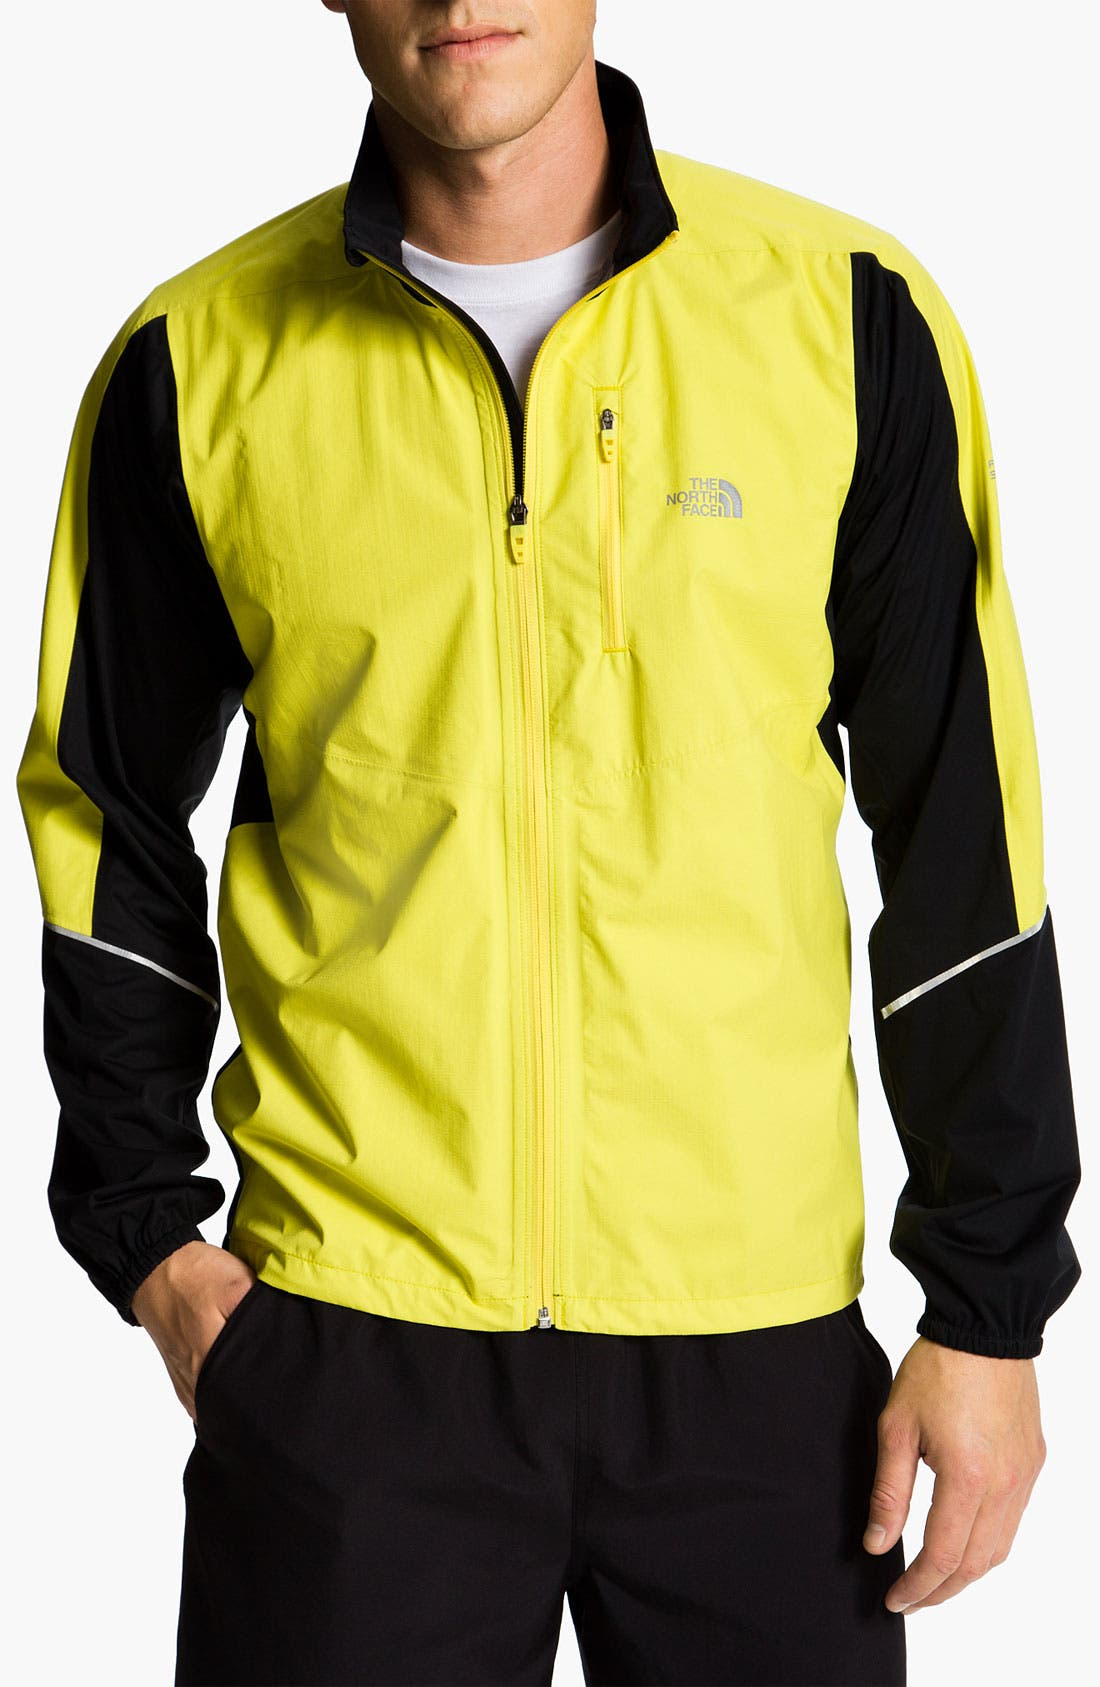 Alternate Image 1 Selected - The North Face 'Stormy Trail' Jacket (Online Exclusive)